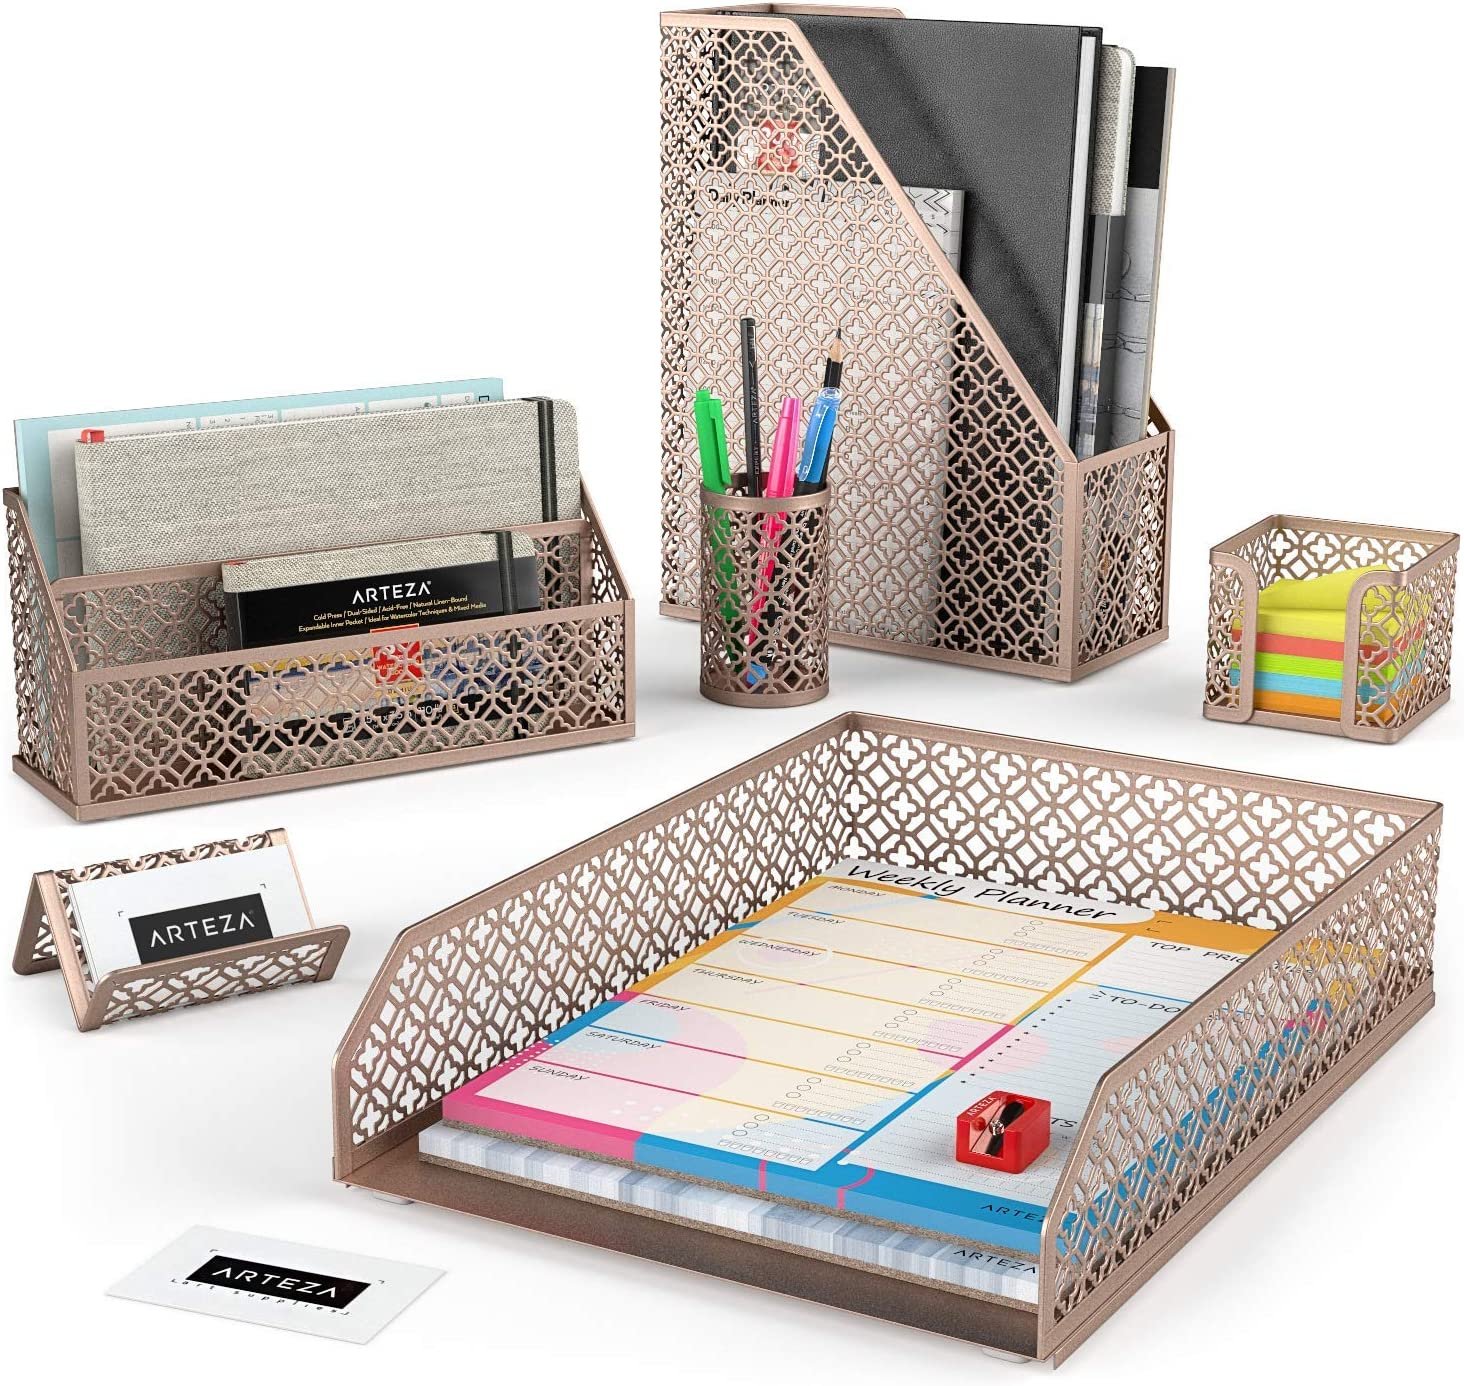 Arteza Desk Organizer Accessories Set in Rose Gold, 6-Piece Includes Pencil Cup Holder, Letter Sorter, Letter Tray, Magazine Holder, Name Card Holder, Sticky Note Holder for Home or Office